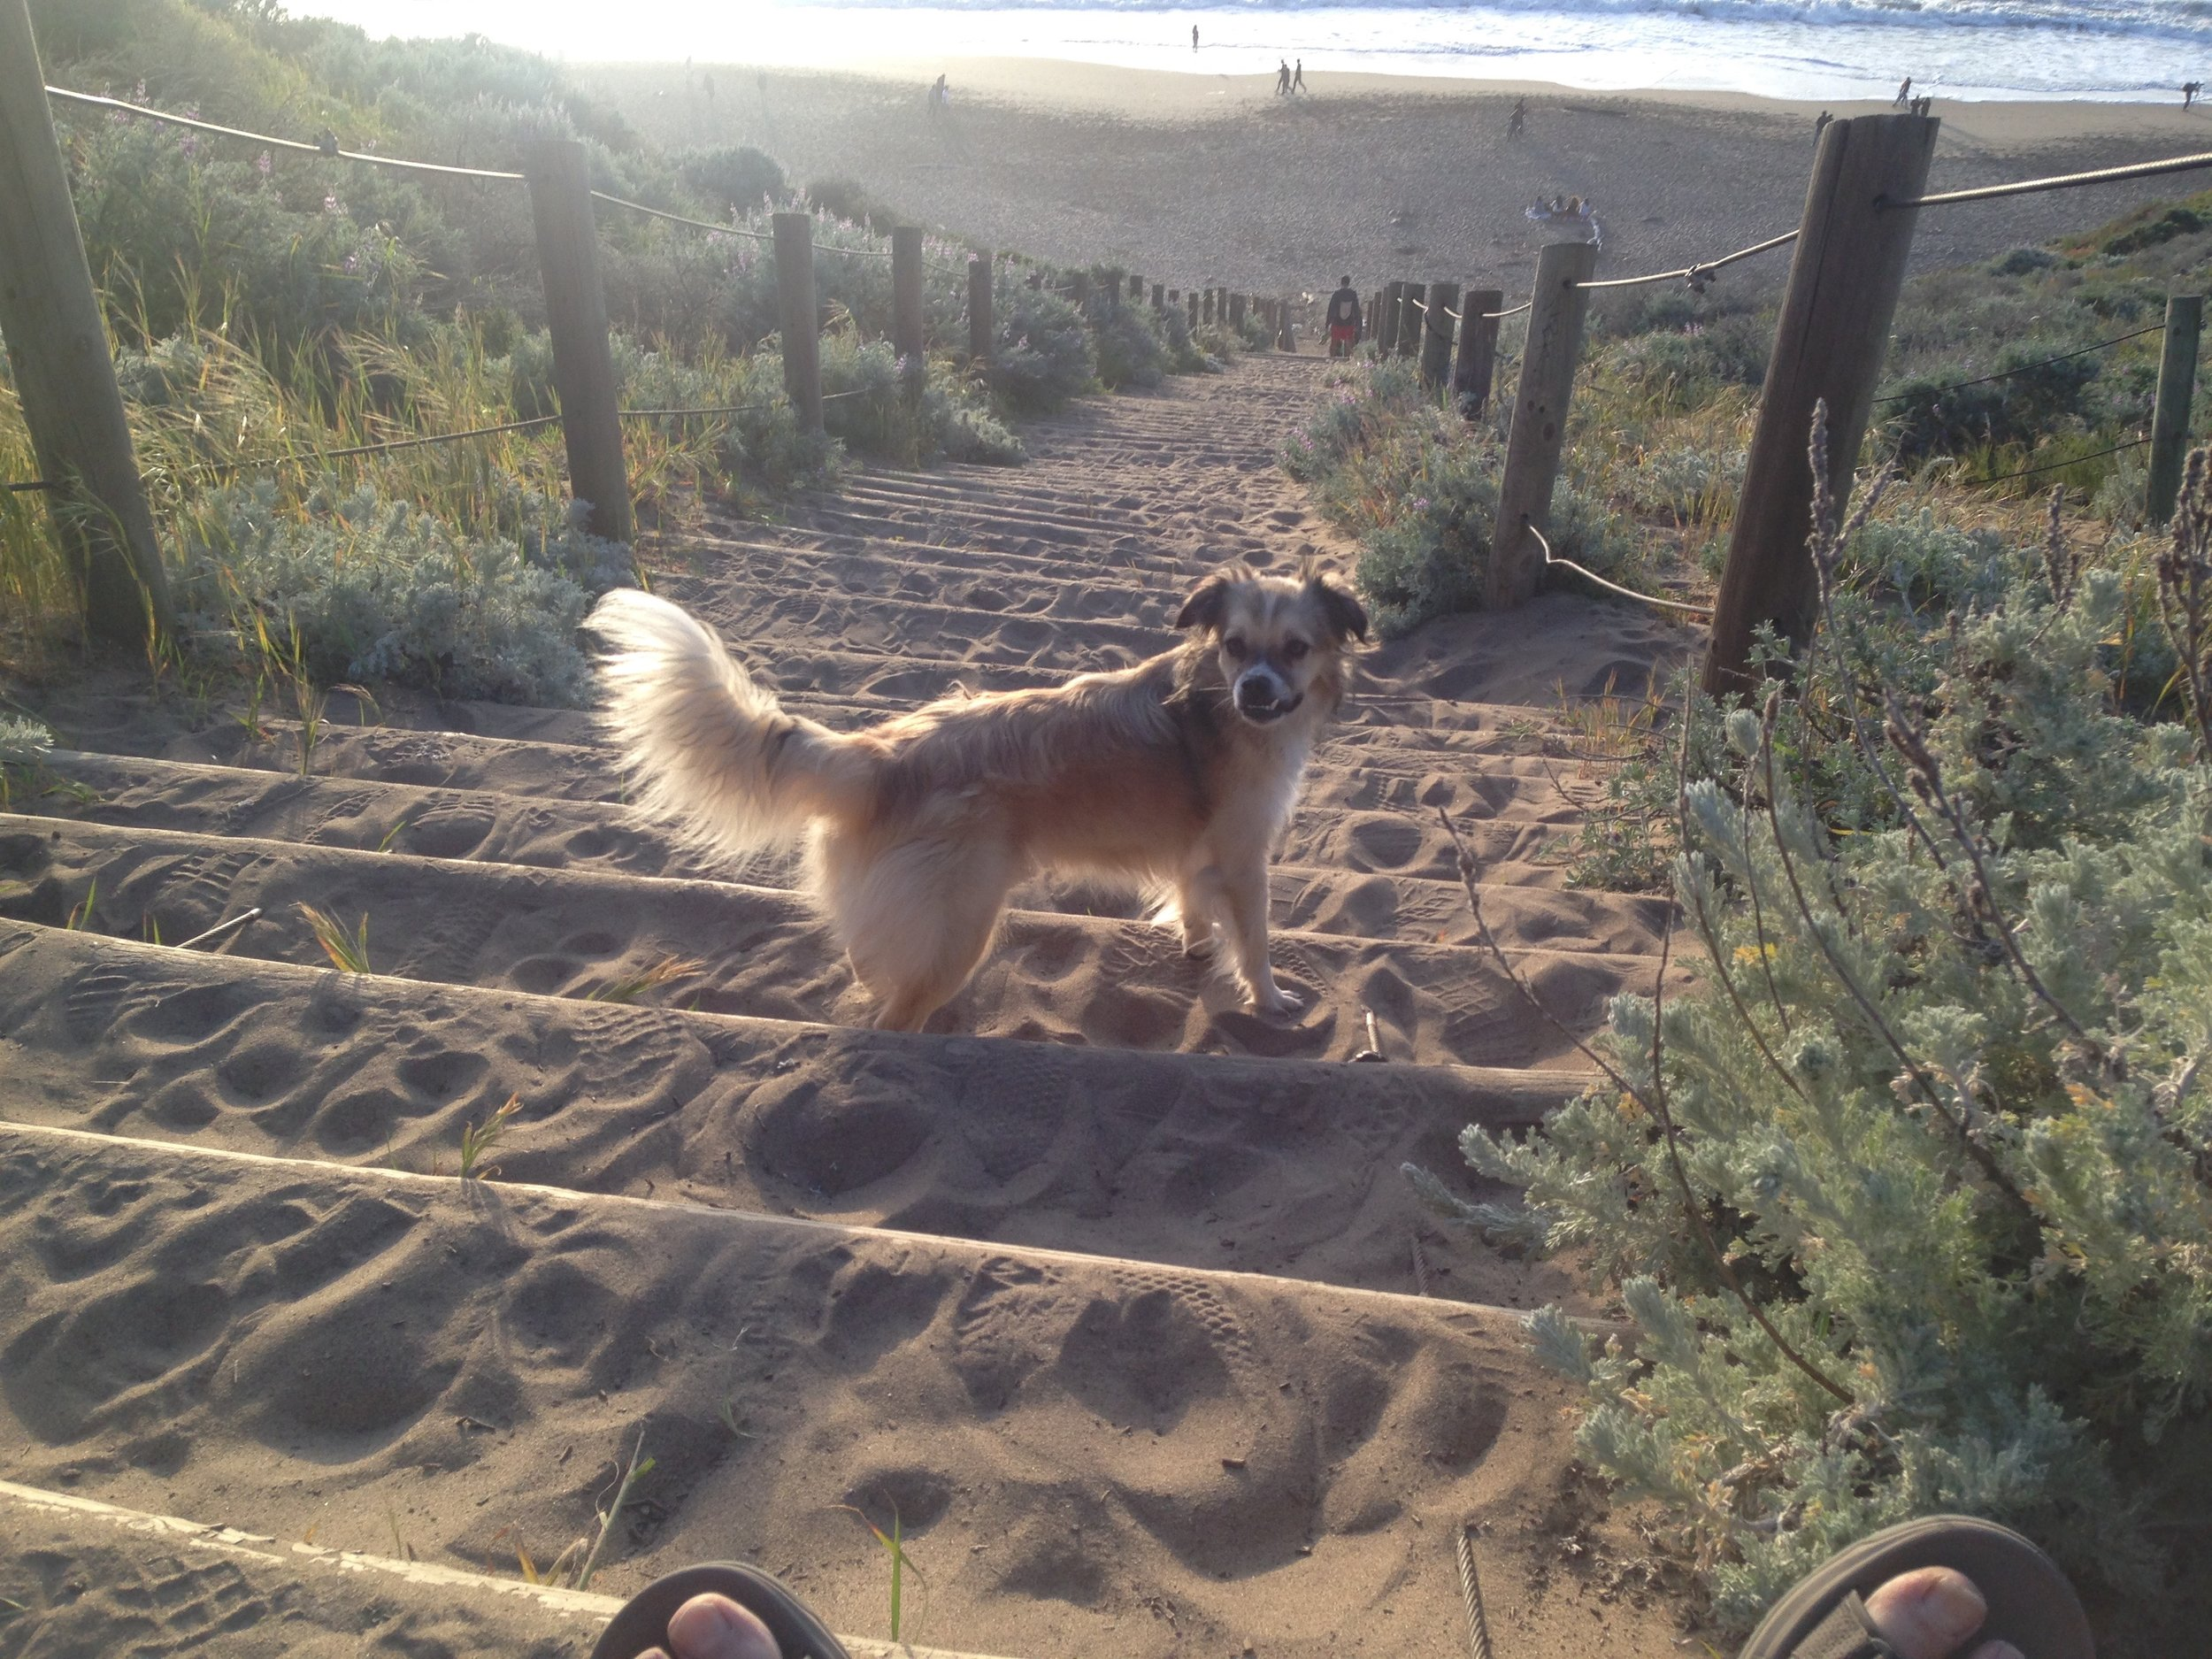 Sand ladder to Baker Beach. Intrepid pooch Huck may or may not join the walking tours.